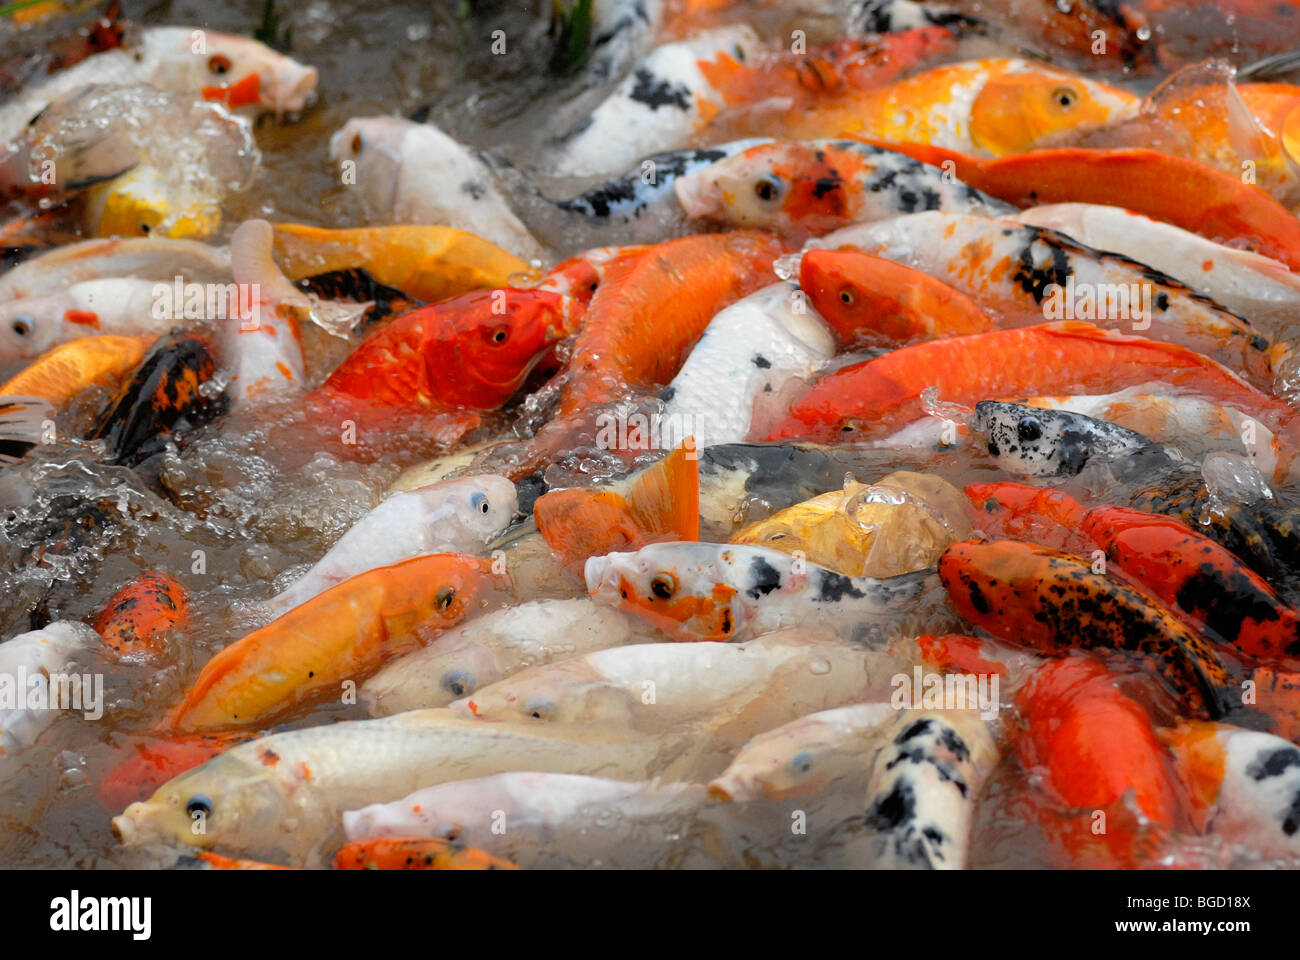 Red, yellow and patterned goldfish (Carassius auratus auratus) in the panda breeding center of Chengdu, Sichuan, - Stock Image